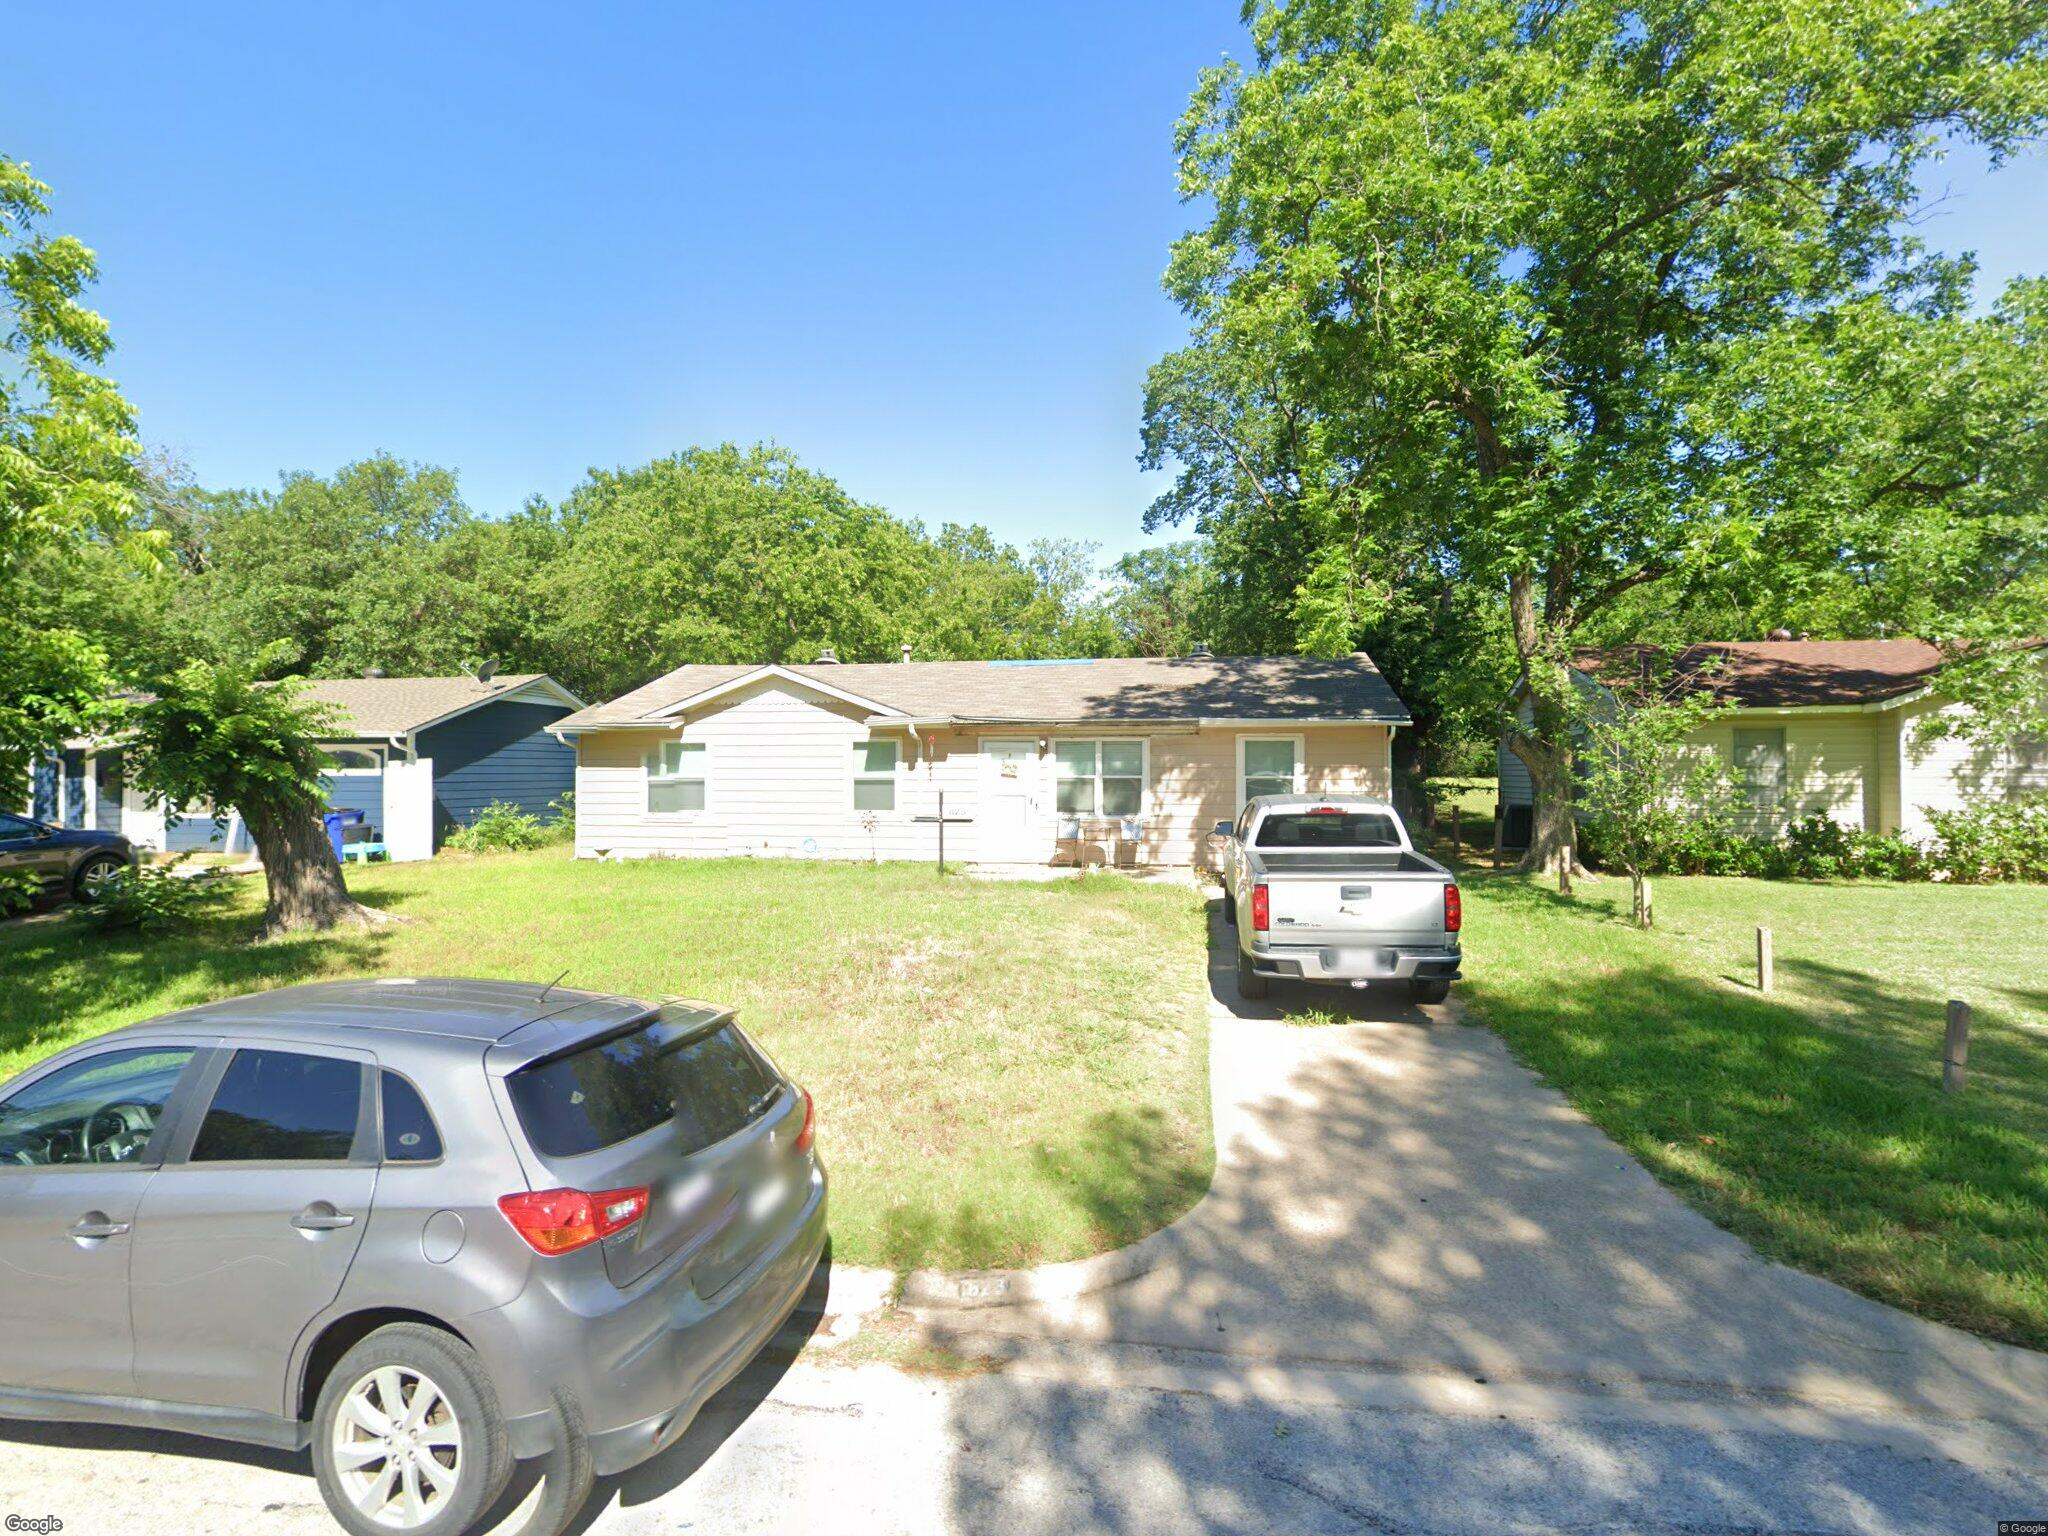 823 Collin Dr Euless Tx 76039 3 Bed 1 Bath Single Family Home